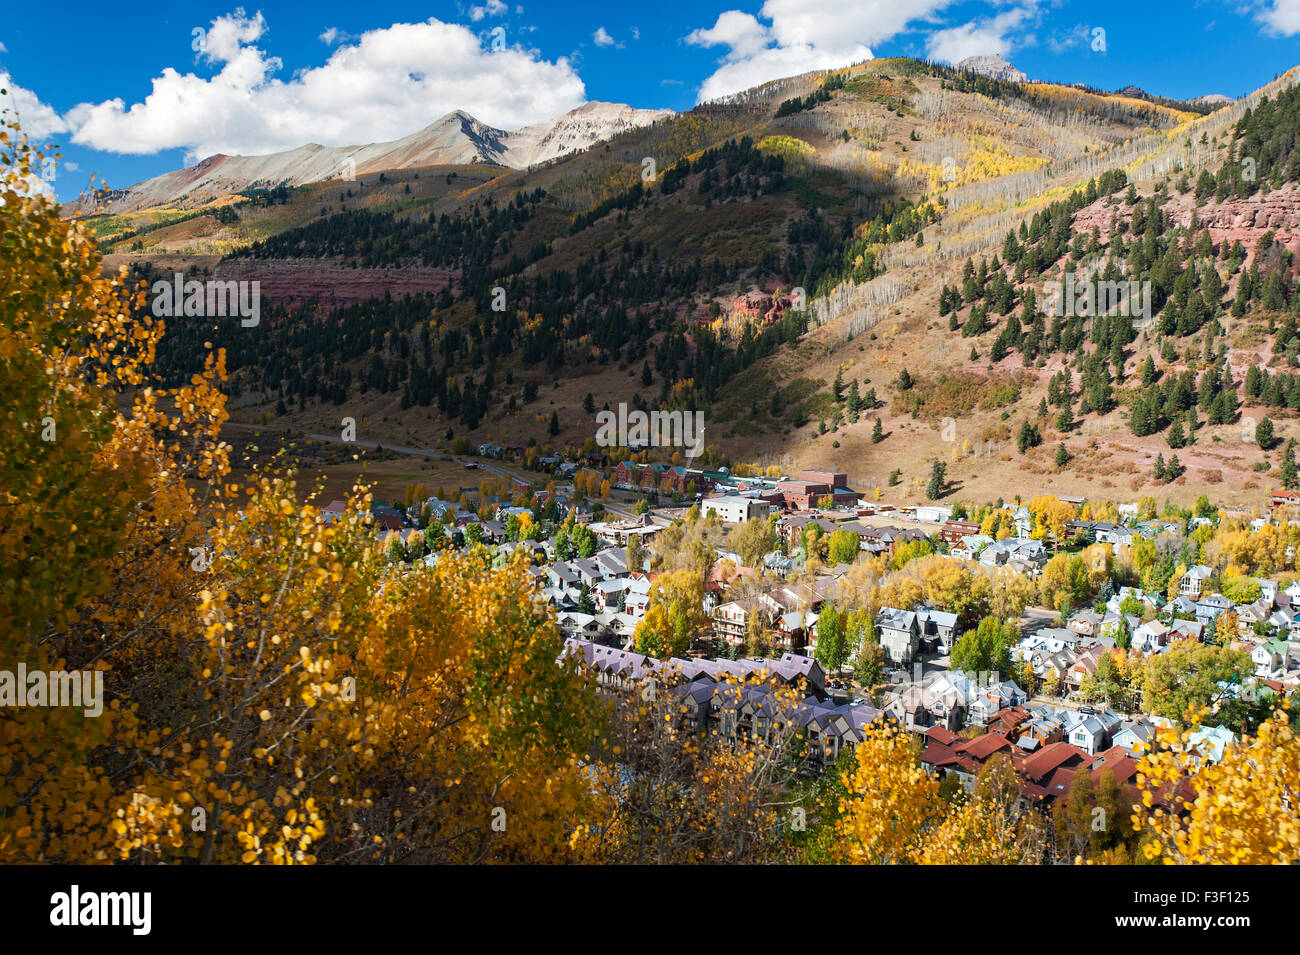 Autumn leaf dispays in Telluride, CO as seen from a gondola - Stock Image